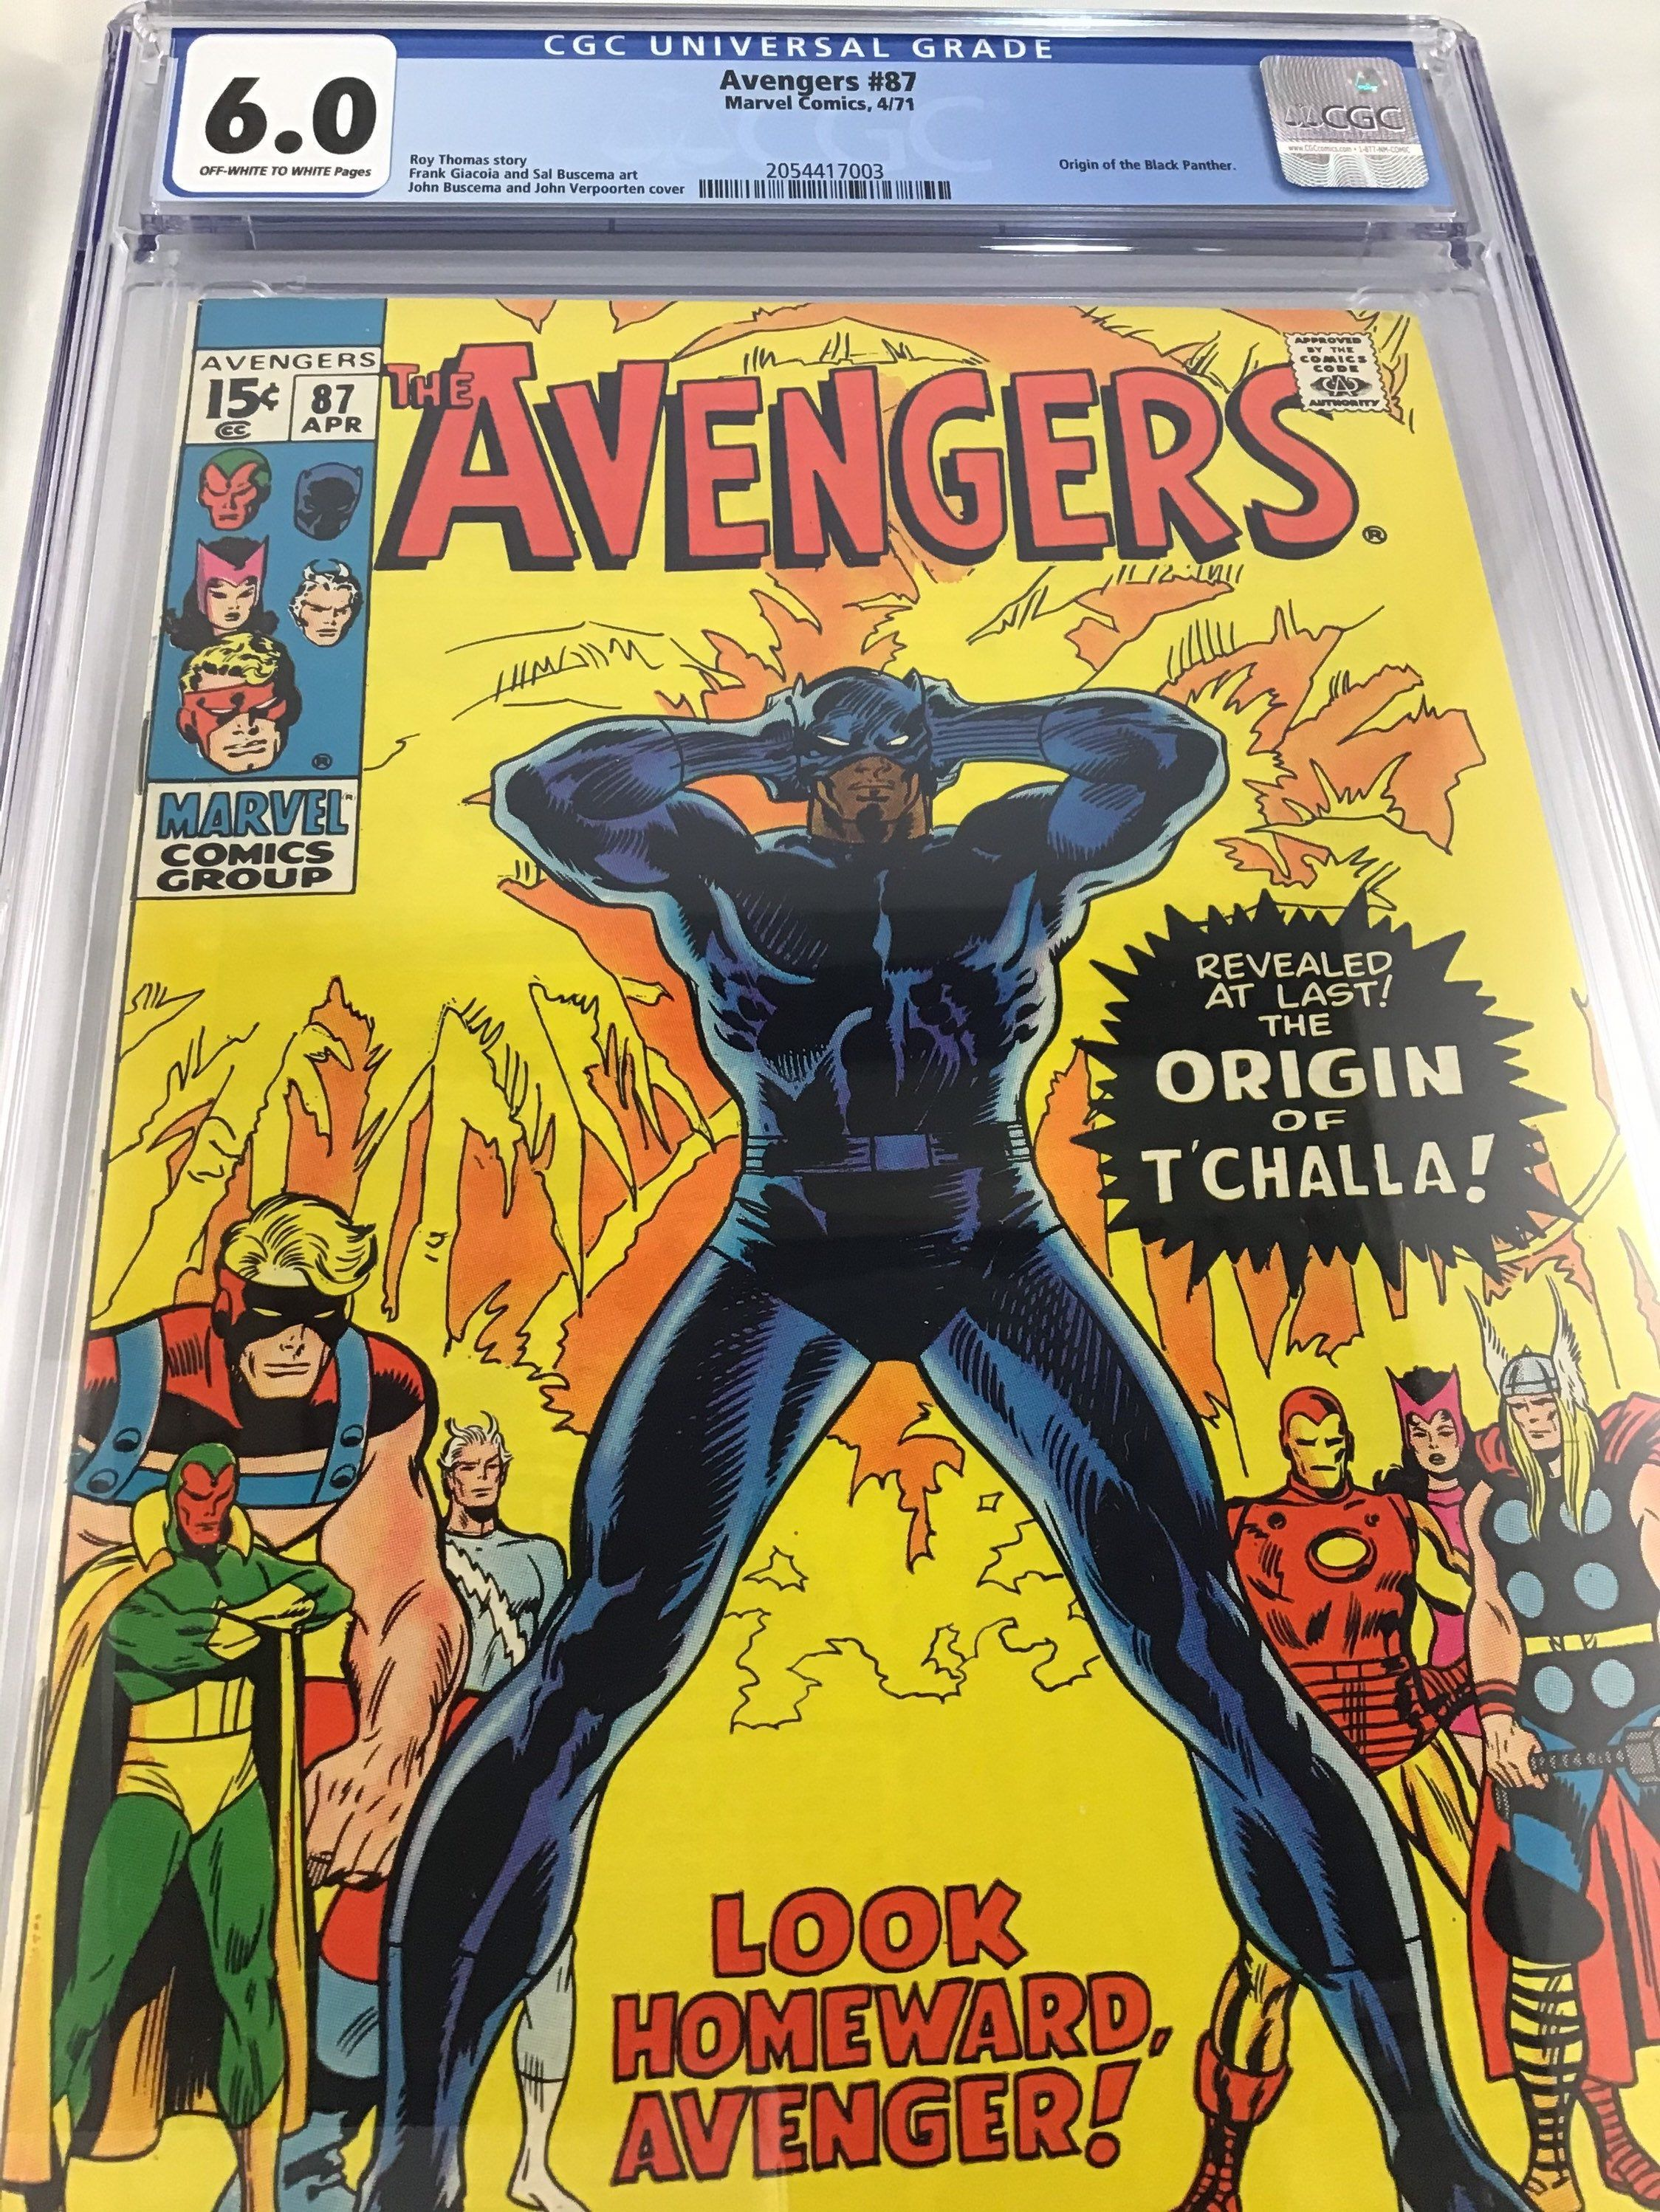 Black Panther Origin Comic Avengers 87 Cgc Graded 6 0 Black Panther Appearance John Buscema Art Roy Thomas Story Avengers Bronze Age In 2021 Marvel Comic Books Marvel Comics Covers Avengers Comics